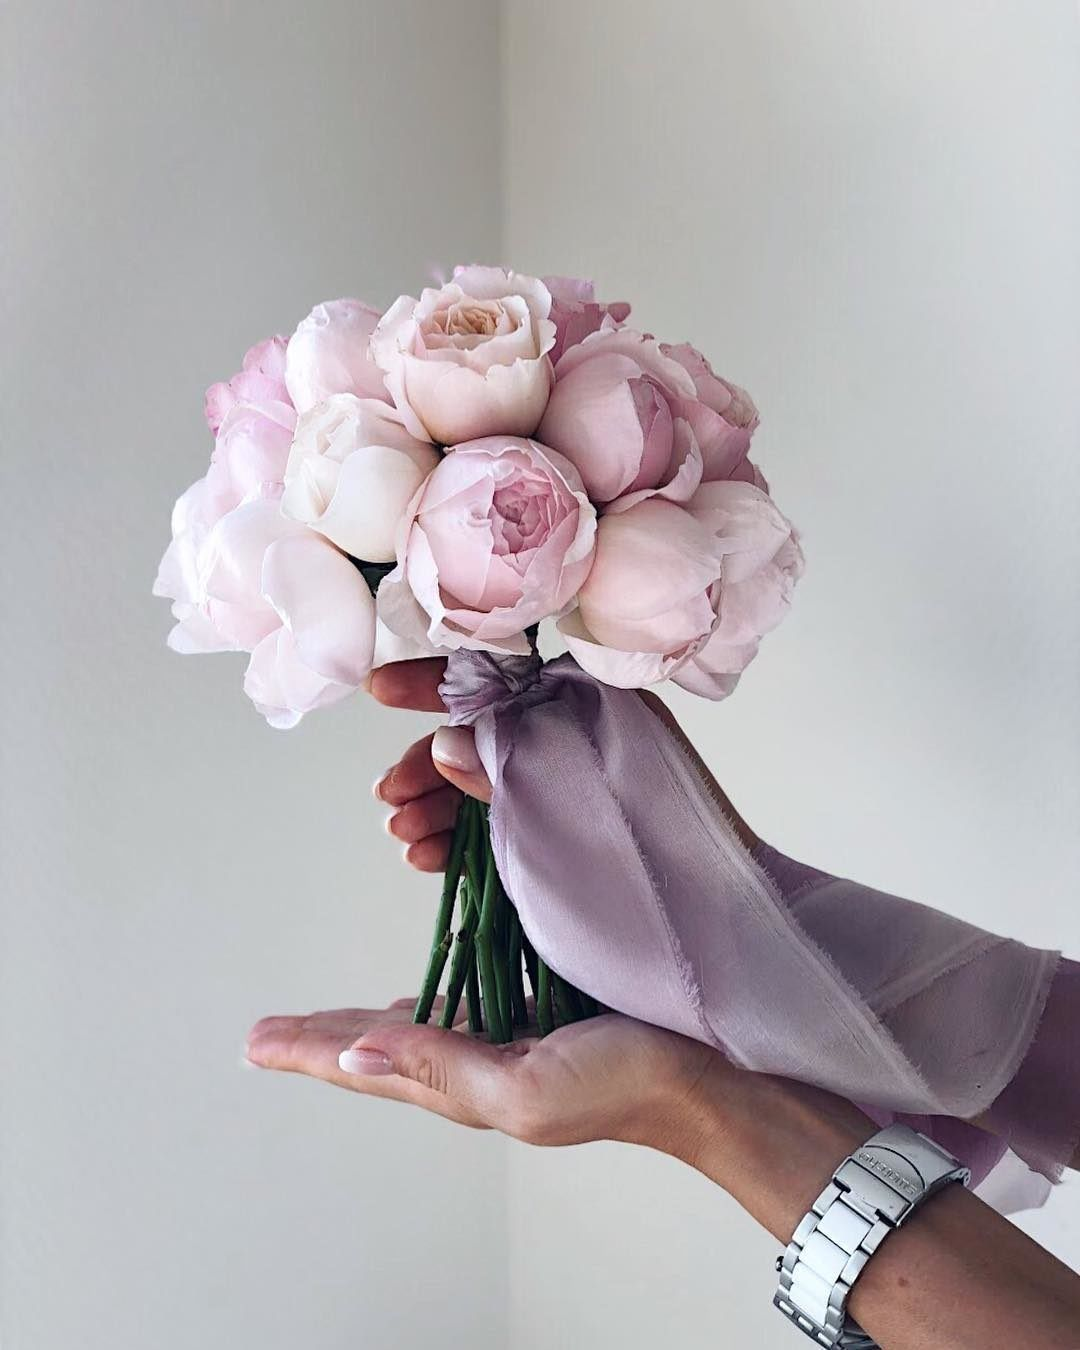 "Engagement Rings Gallery on Instagram: ""Flowers - is always good idea"